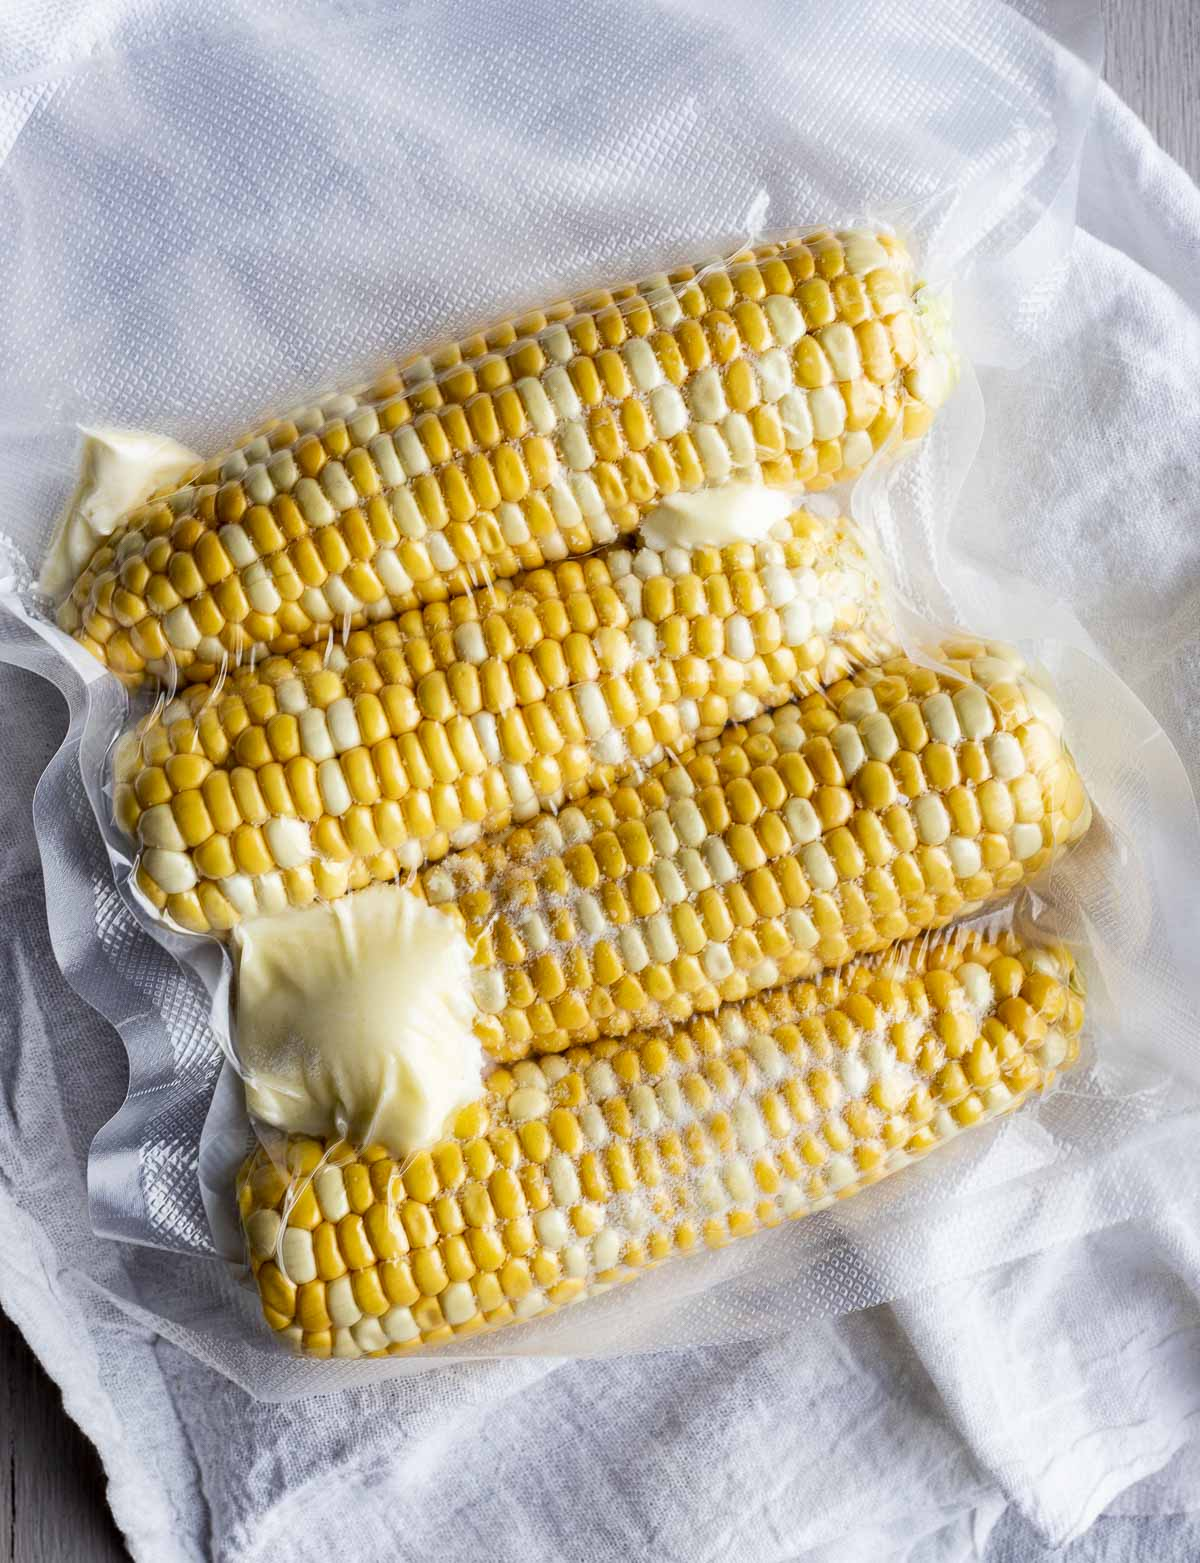 Four ears of fresh corn vacuum sealed in a bag with butter.